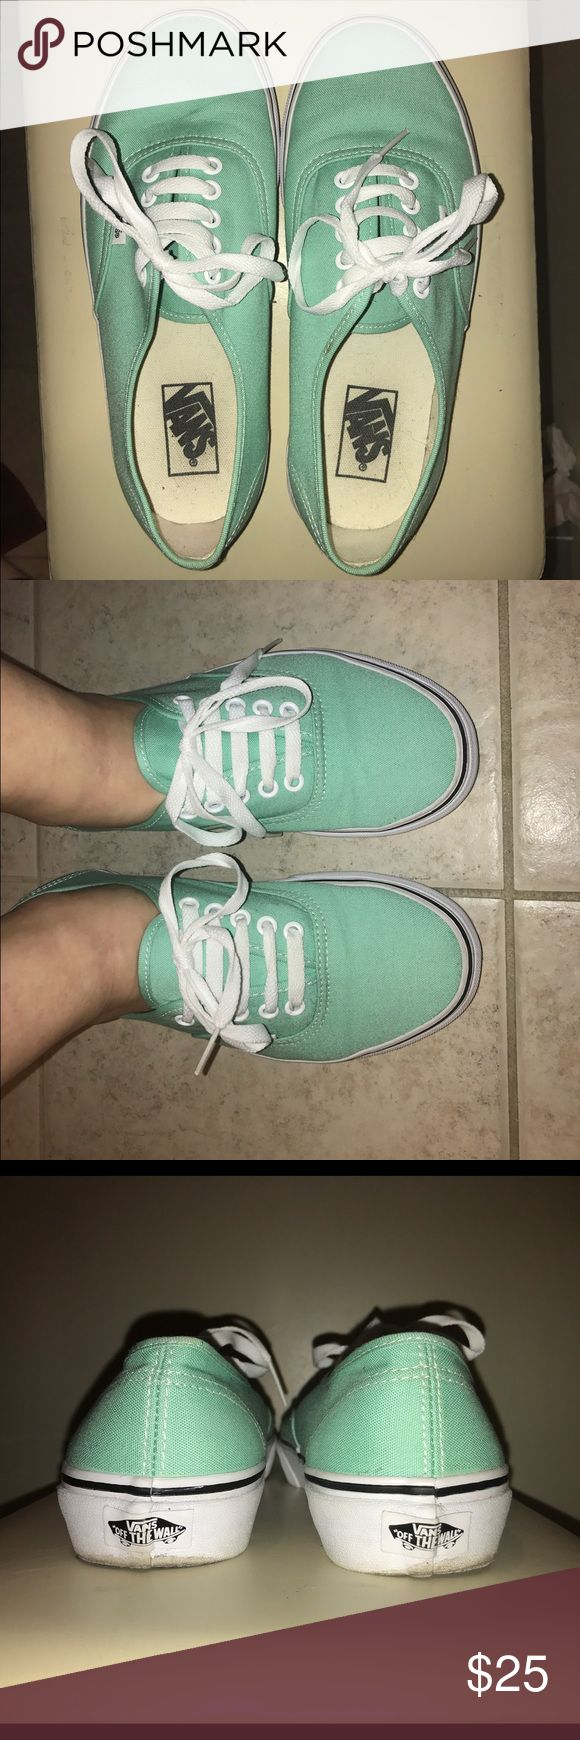 Mint Authentic Vans Fresh Mint Vans! Only worn a few times! Great for wide feet! A little scuffed in the back, but the sides are still sparkling white! Vans Shoes Sneakers